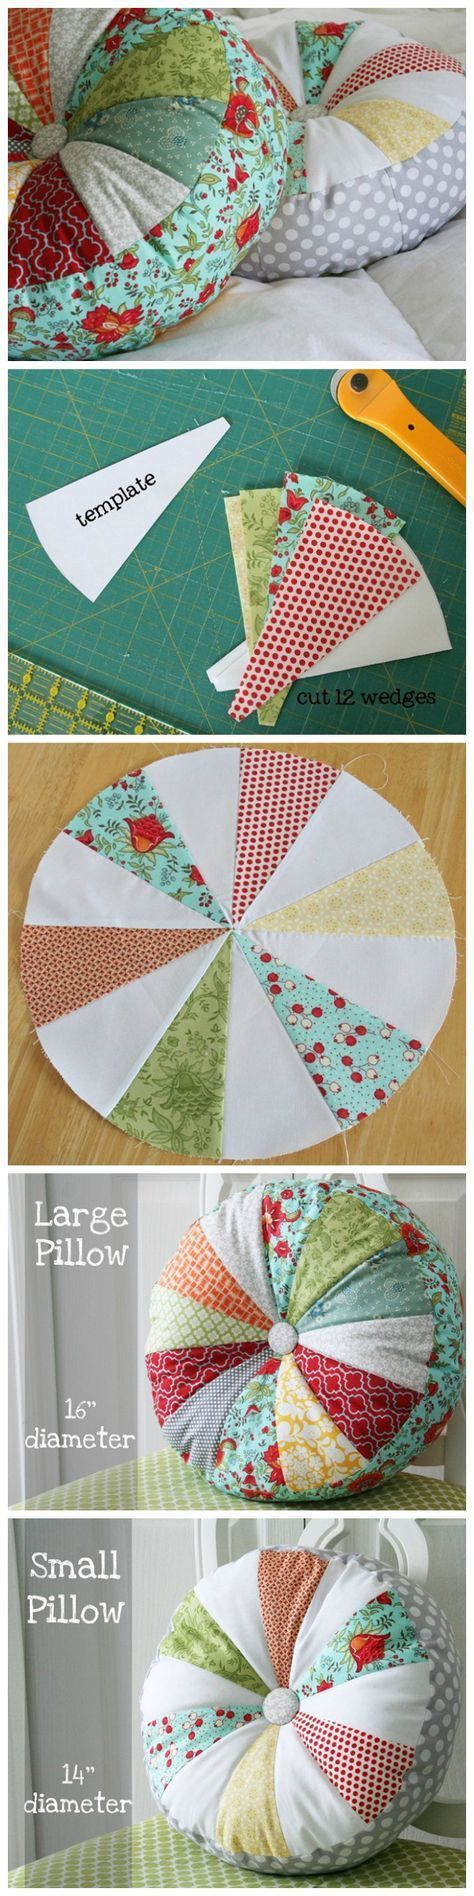 Scrappy sprocket patchwork pillow tutorial & Scrappy sprocket patchwork pillow tutorial | Sewing tutorials and ... pillowsntoast.com